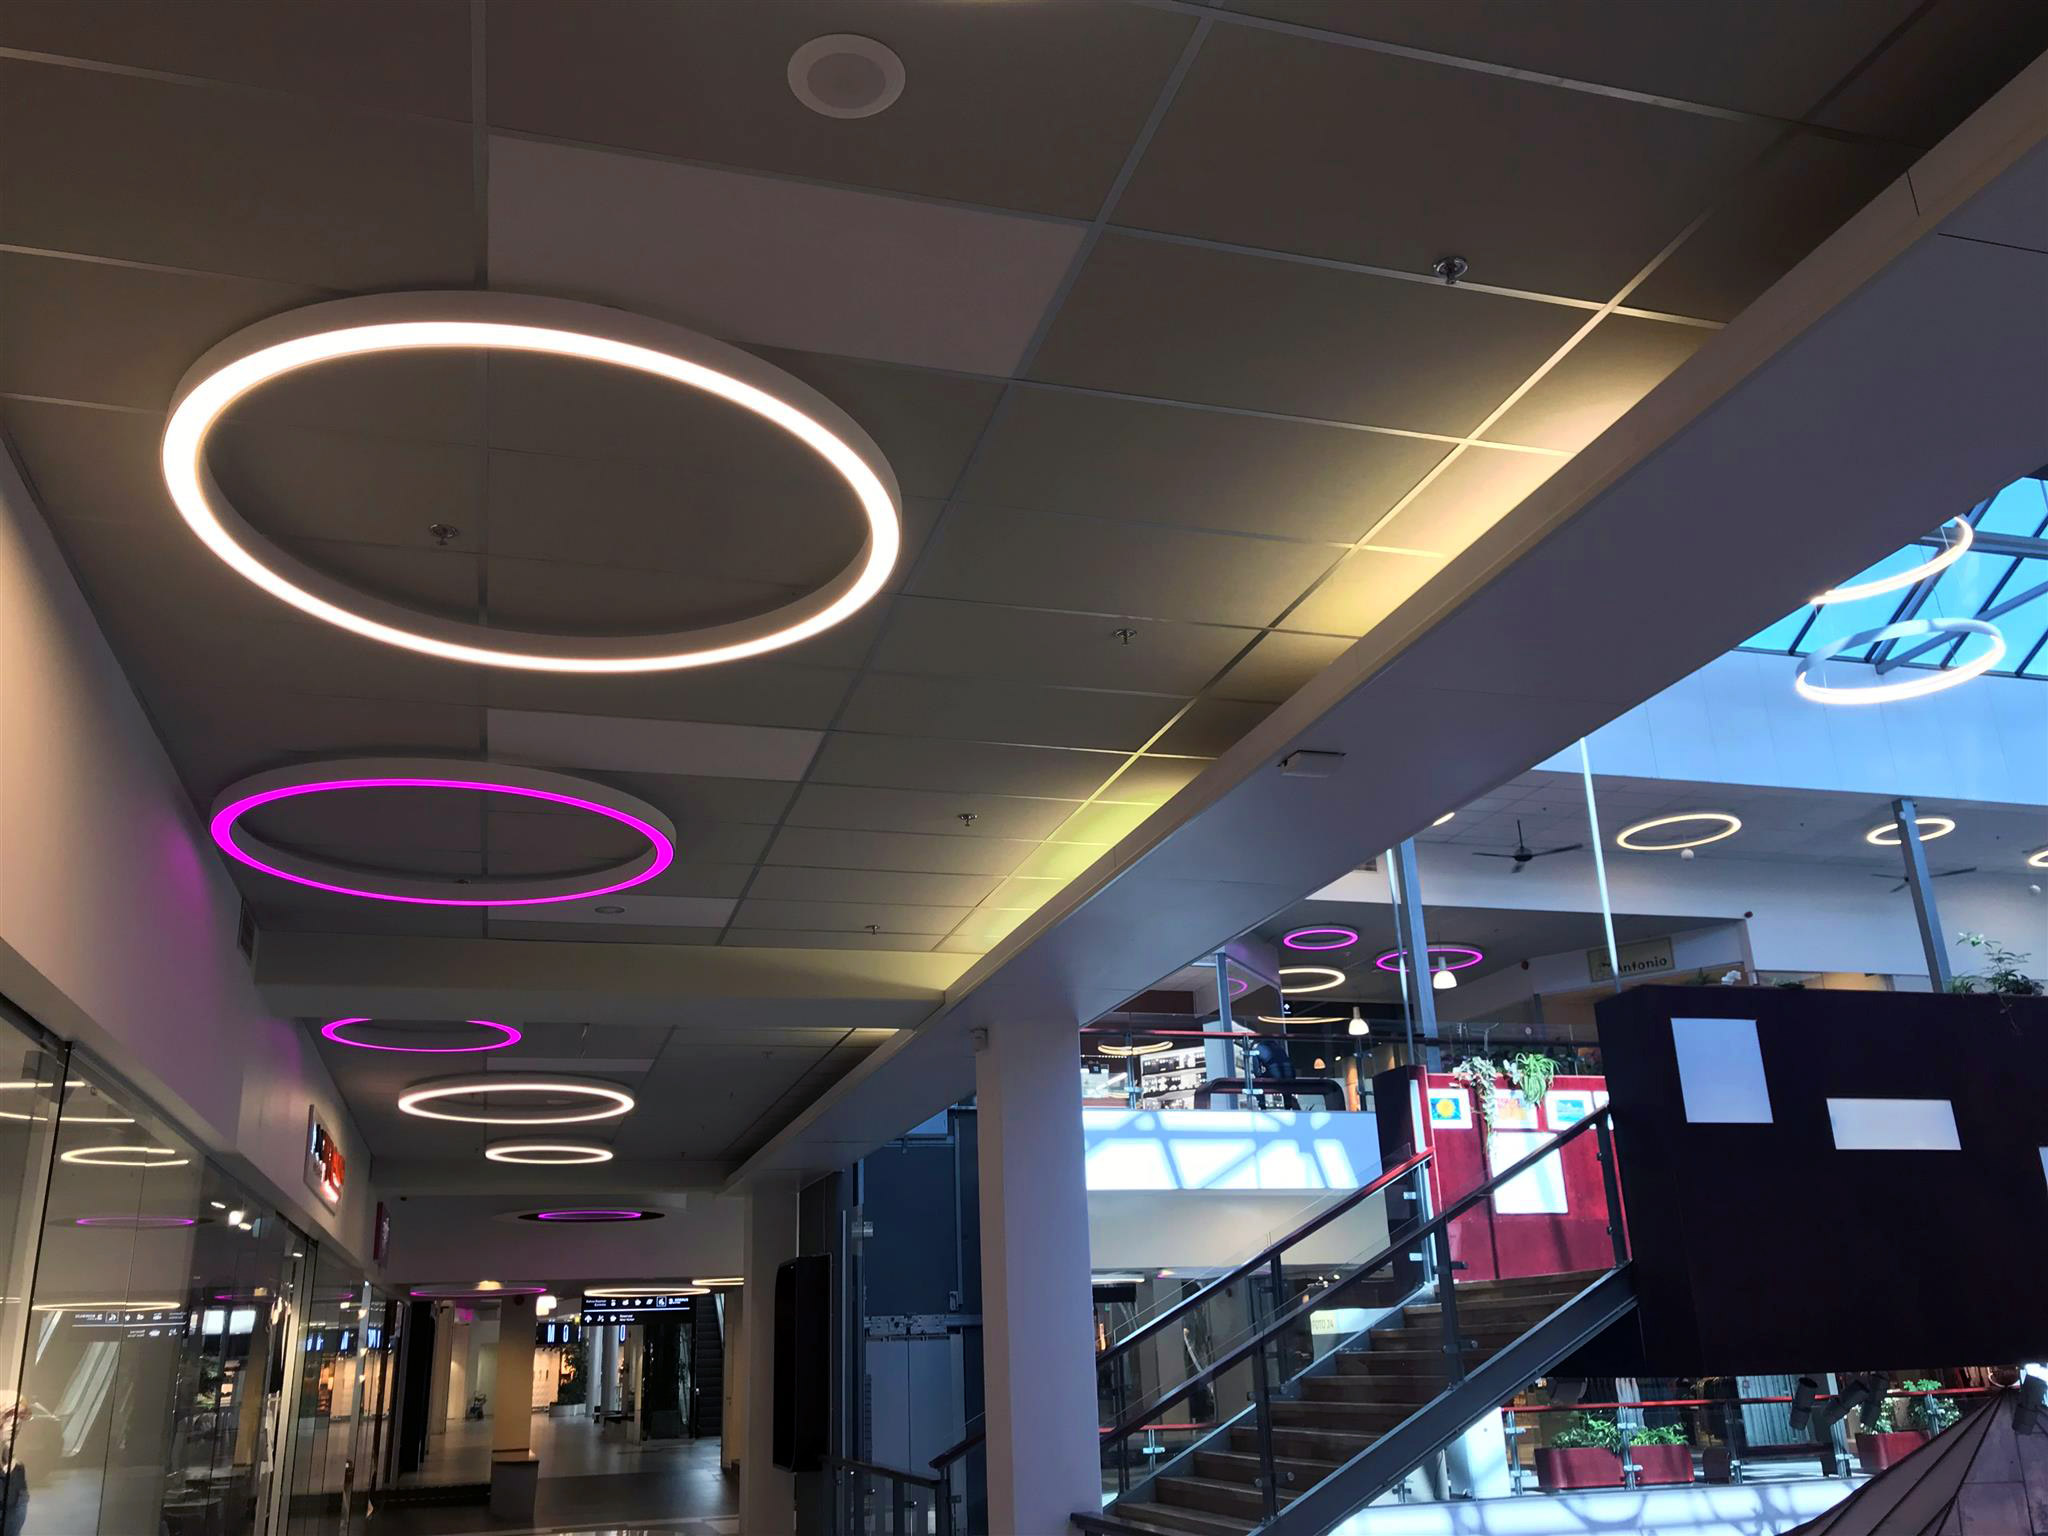 saros-lighting-solutions-shopping-mall-estonia-image-7